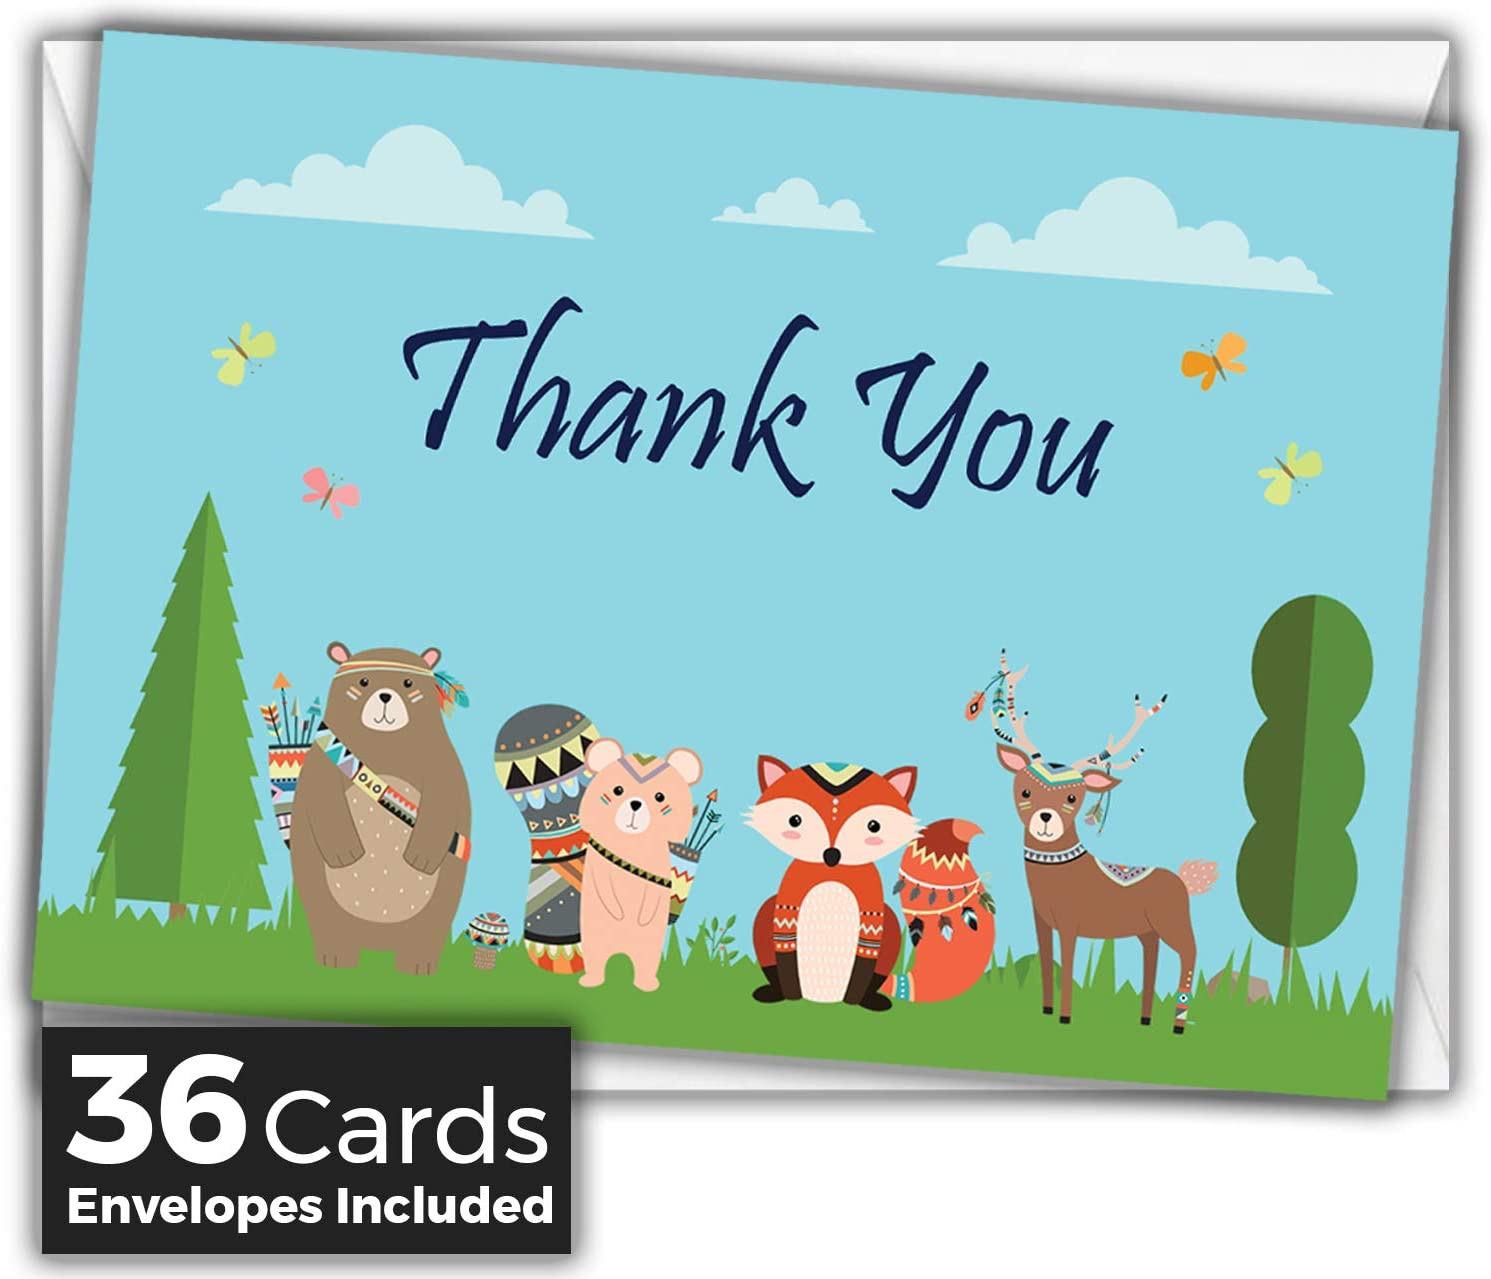 Thank You Cards for Baby Shower Set of 24 Blank Notecards with Envelopes Girls for Boys Kids Made in Canada 6 Designs Variety Pack Parties 4x5 inch Jungle Safari Animals Watercolor Birthdays